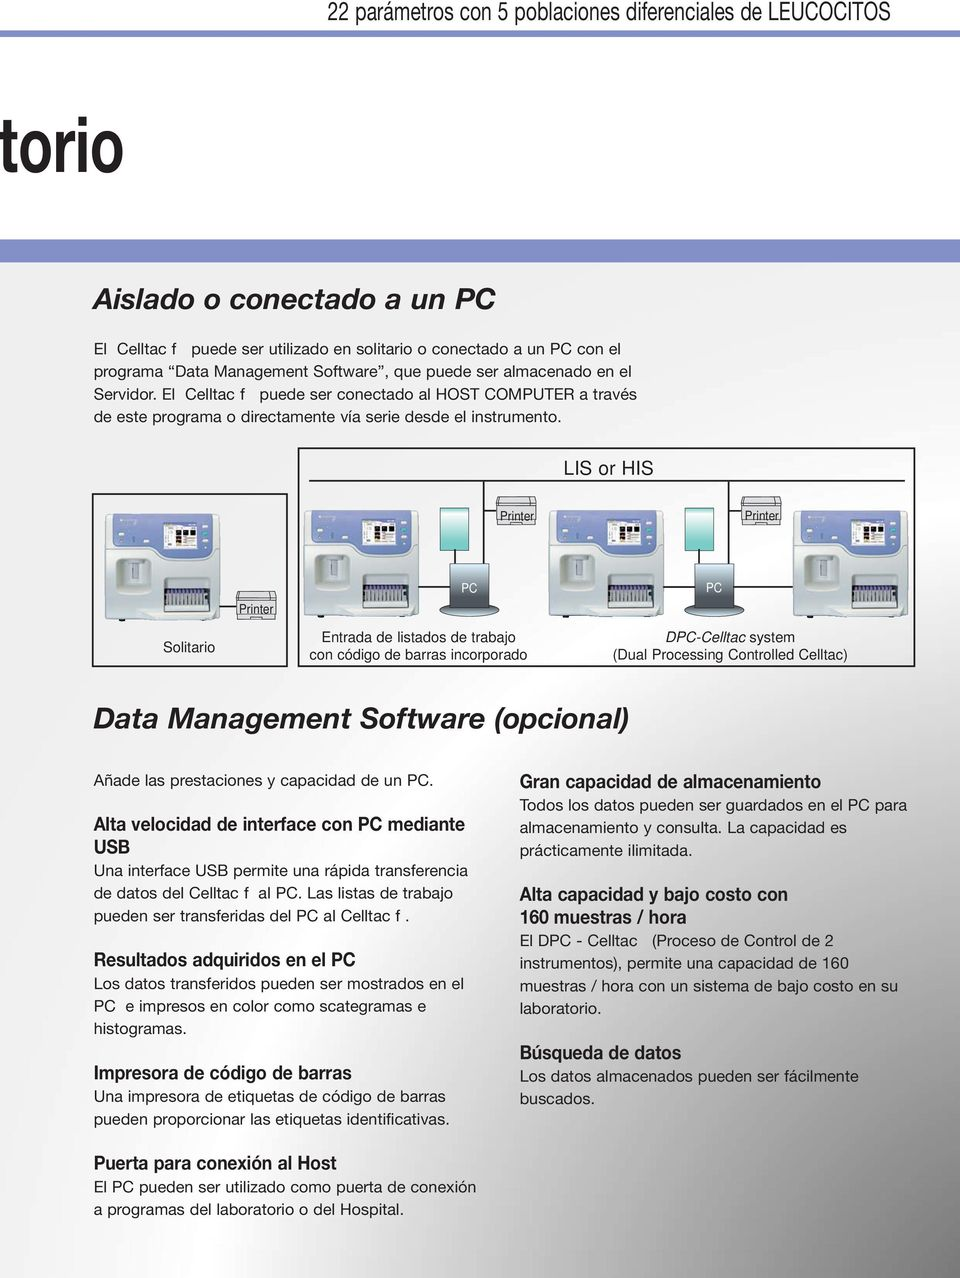 LIS or HIS Printer Printer Printer PC PC Solitario Entrada de listados de trabajo con código de barras incorporado DPC-Celltac system (Dual Processing Controlled Celltac) Data Management Software